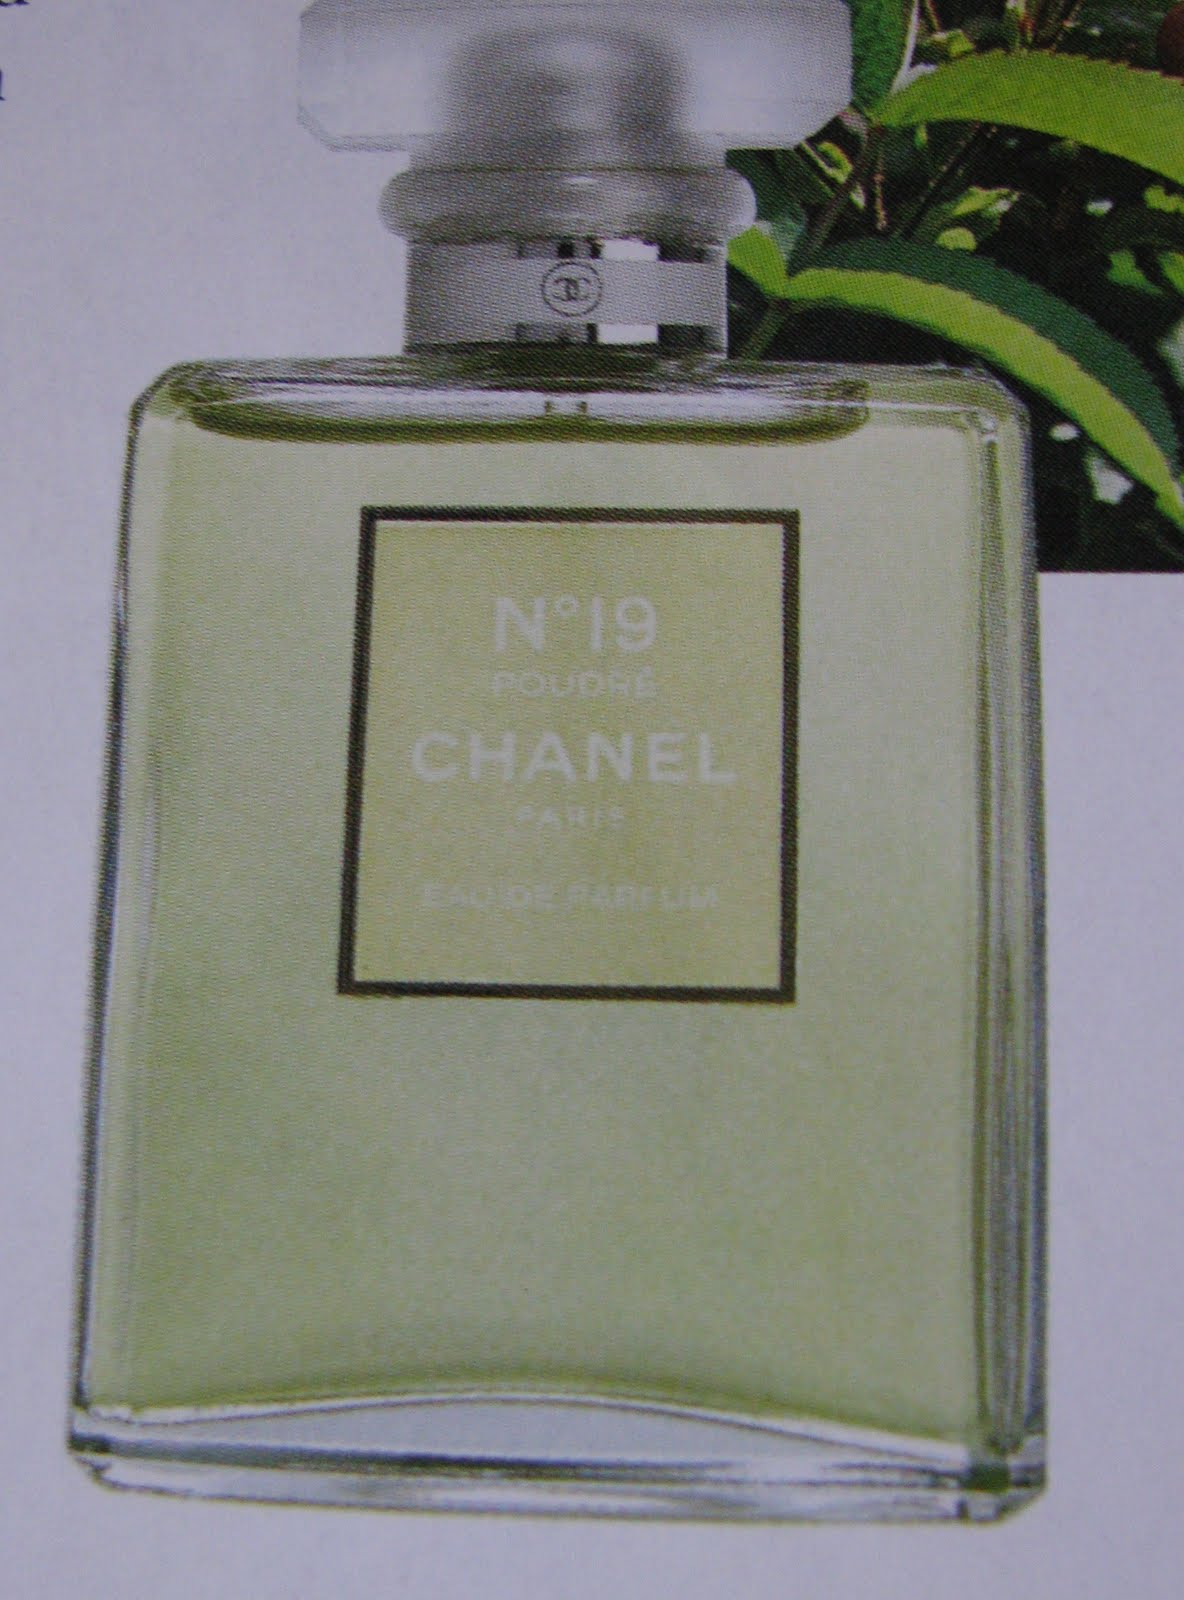 e5b638fa9d Perfume Shrine: Chanel to Launch Les Exclusifs Jersey & Chanel No.19 ...